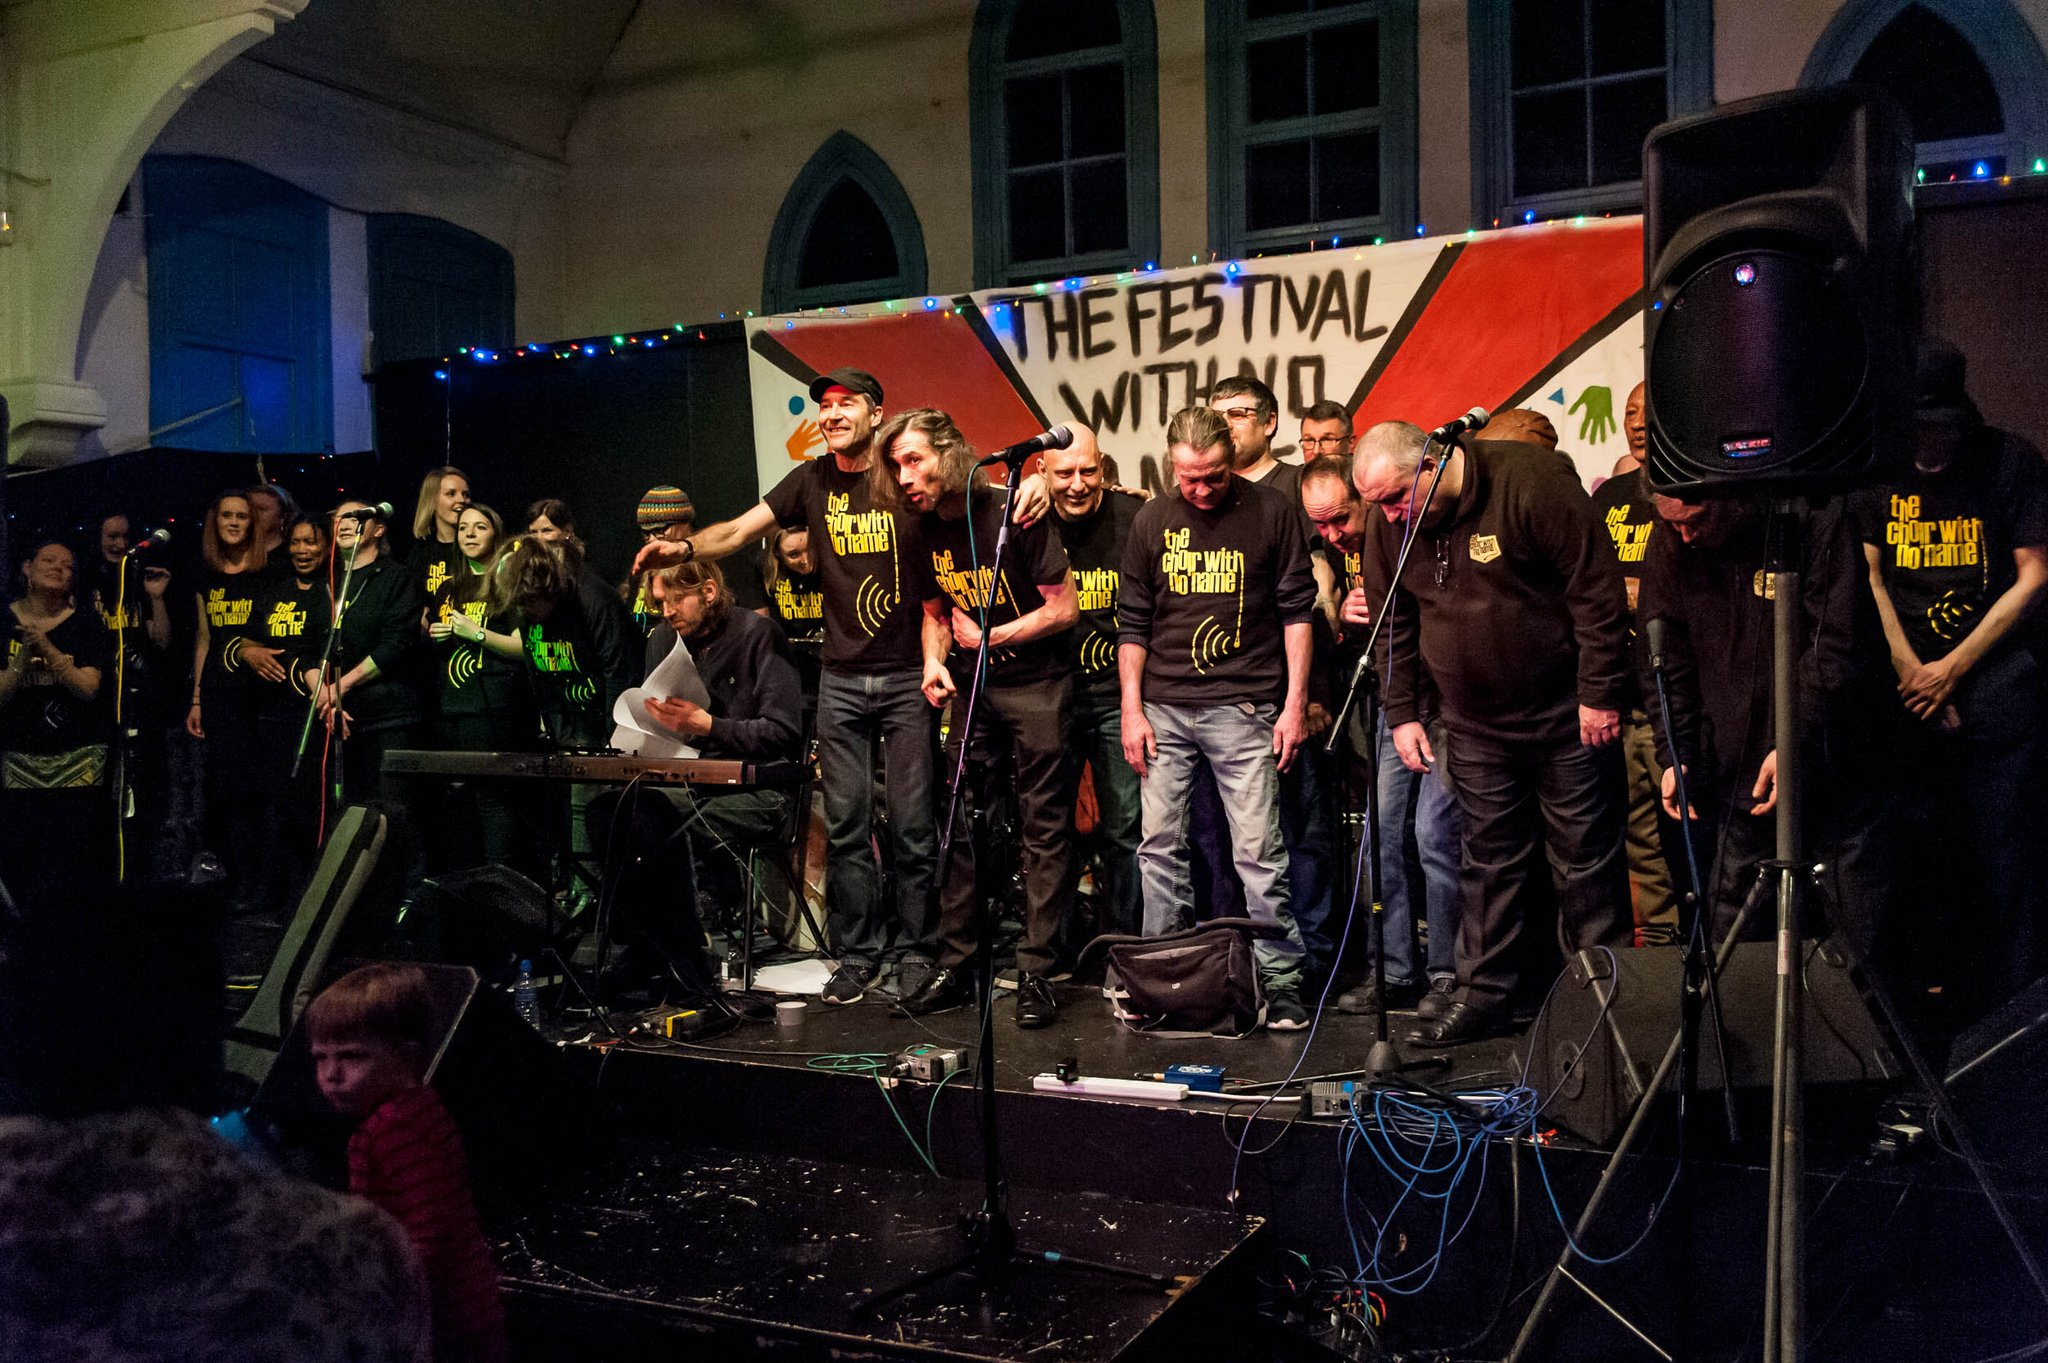 CWNN #Brum's Festival with No Name raises the roof (and lots of cash!) Checkout highlights from the day: https://t.co/uKpUsR7Ukr https://t.co/Wb1zhkjwBB